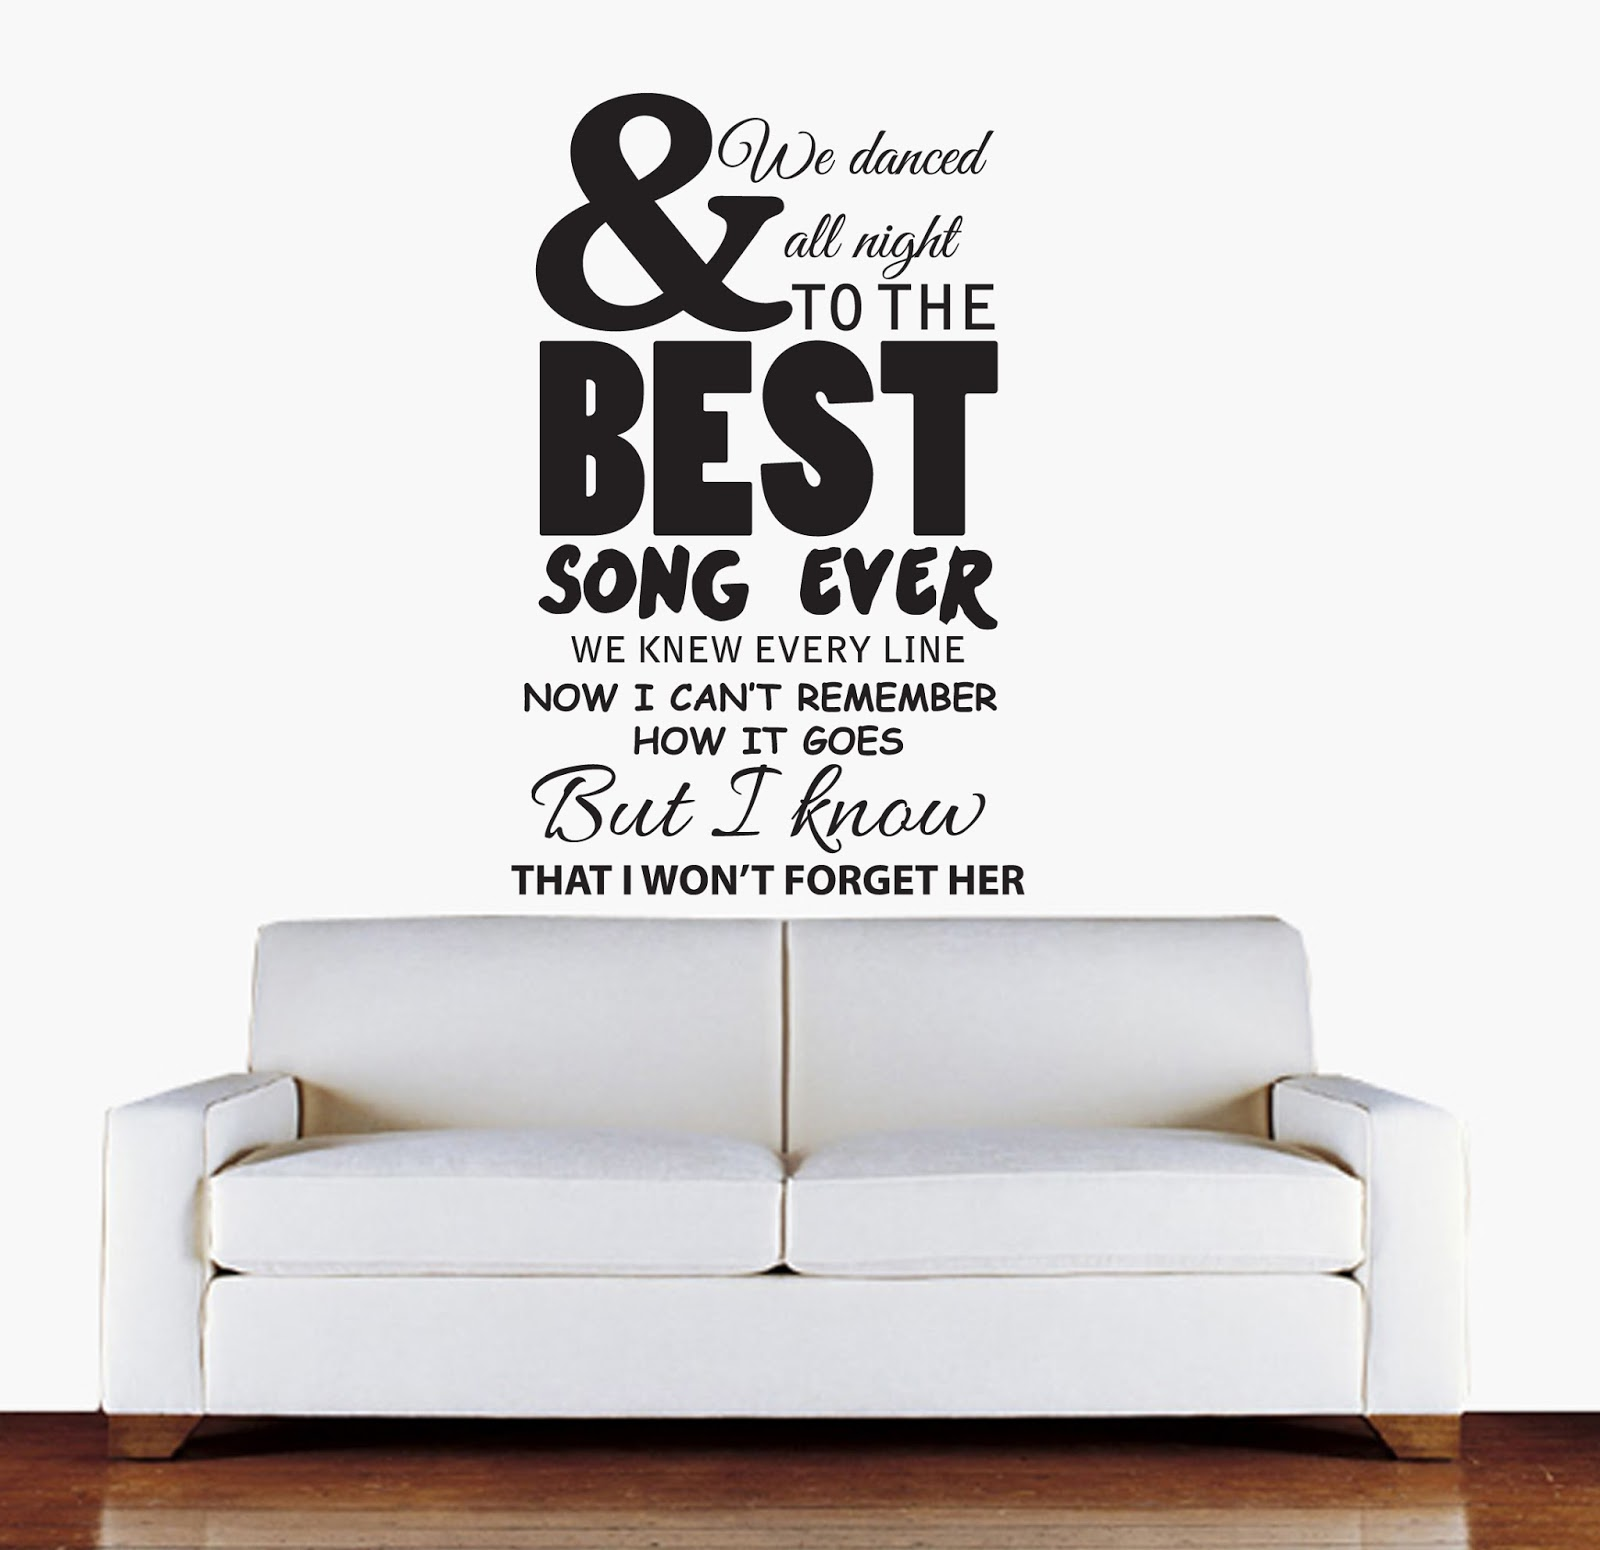 sophie jenner wall stickers 1d one direction lyrics ed sheeran cold coffee song lyrics decal vinyl wall